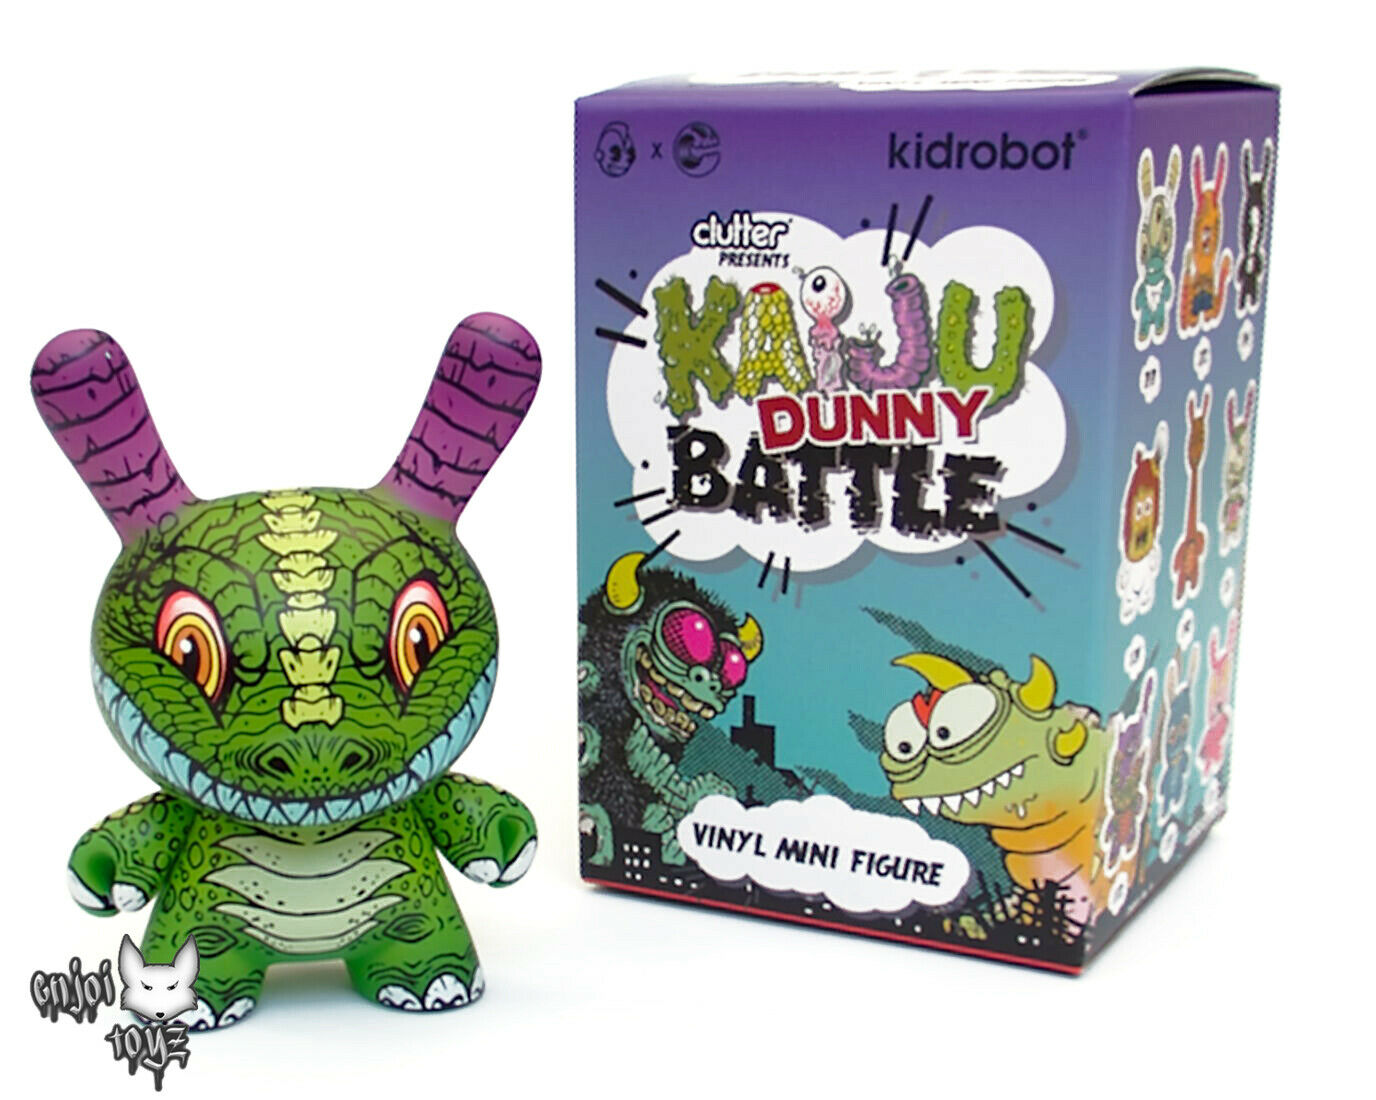 Dunnysaurus Rex by James Groman - Kidrobot x Clutter Kaiju Dunny Battle Series